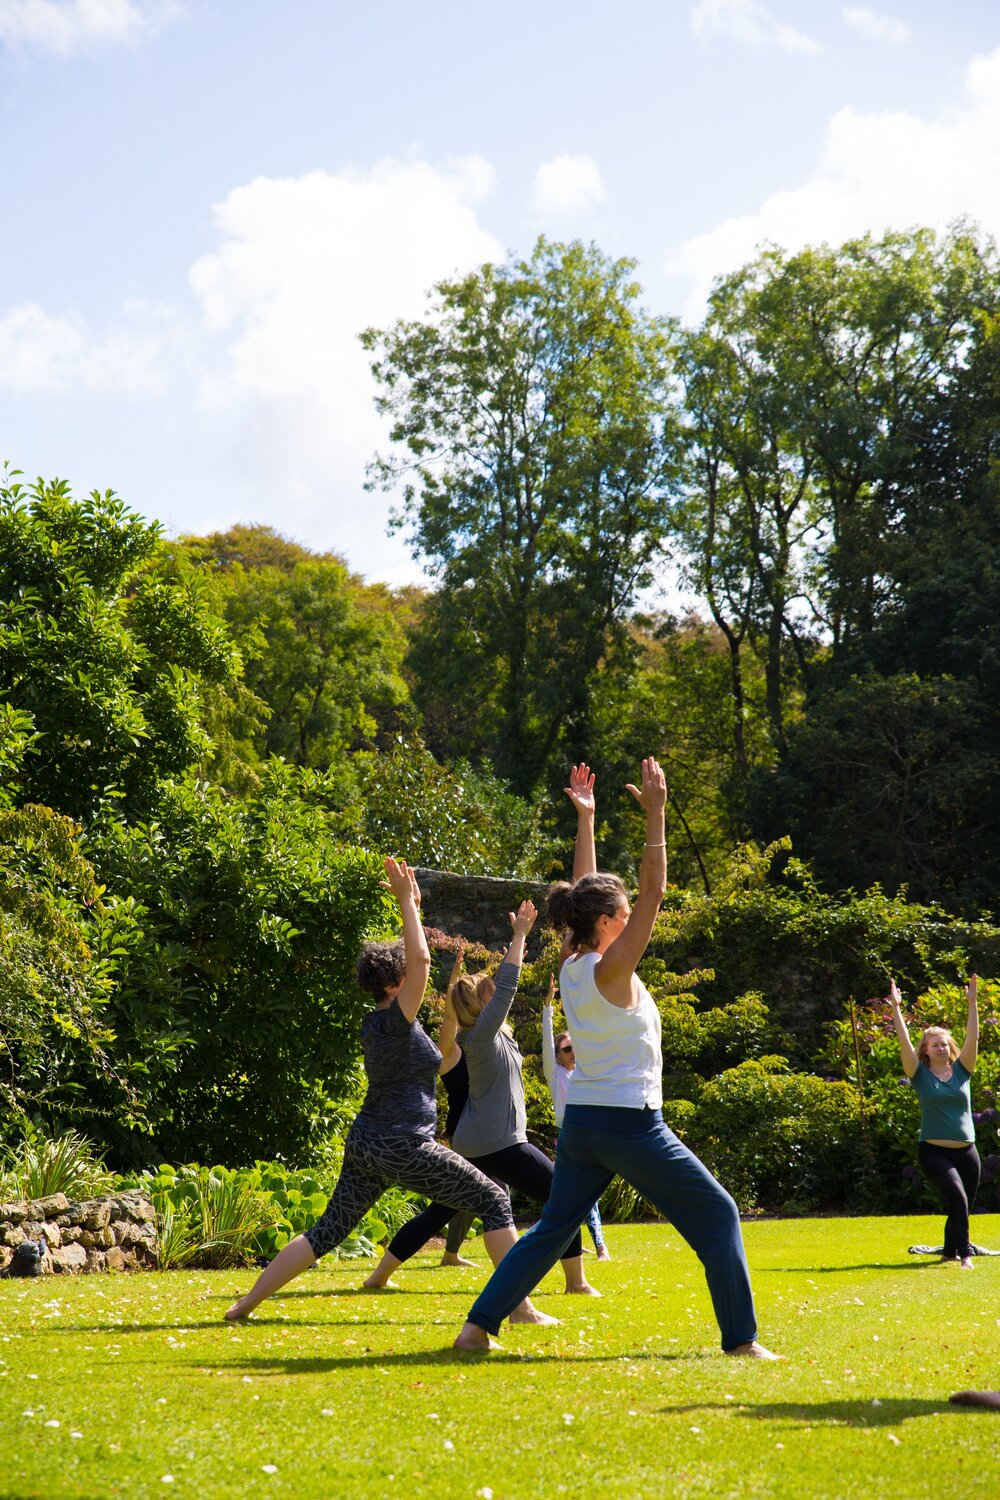 Take Your Yoga Outdoors